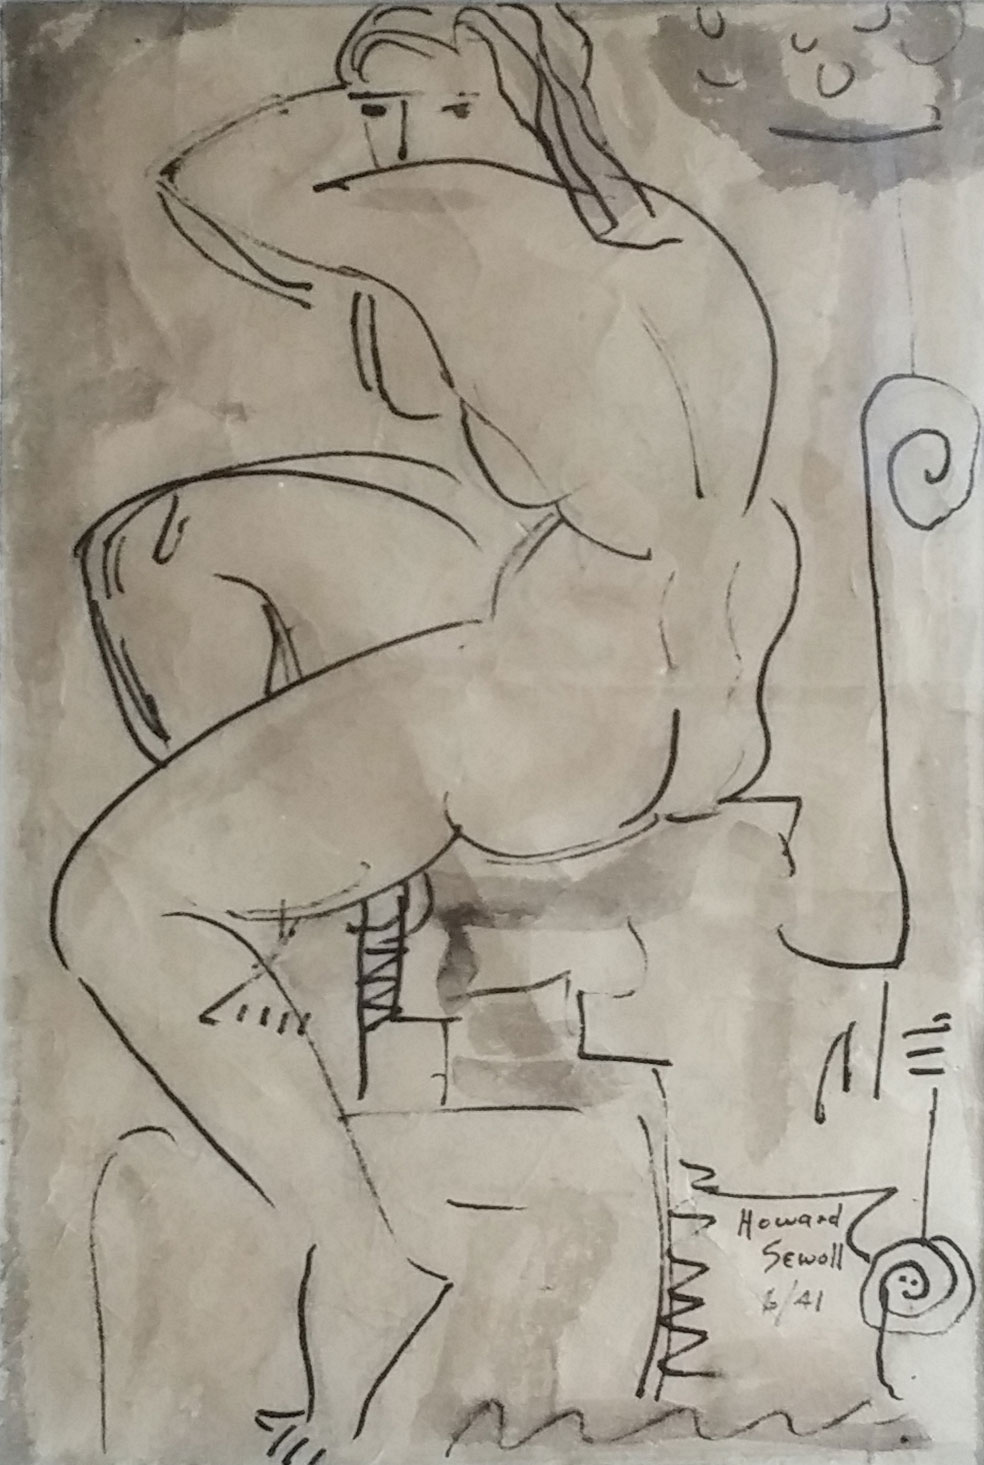 Nude figure,  water color sketch, 10x14 $2,500  Howard Sewall